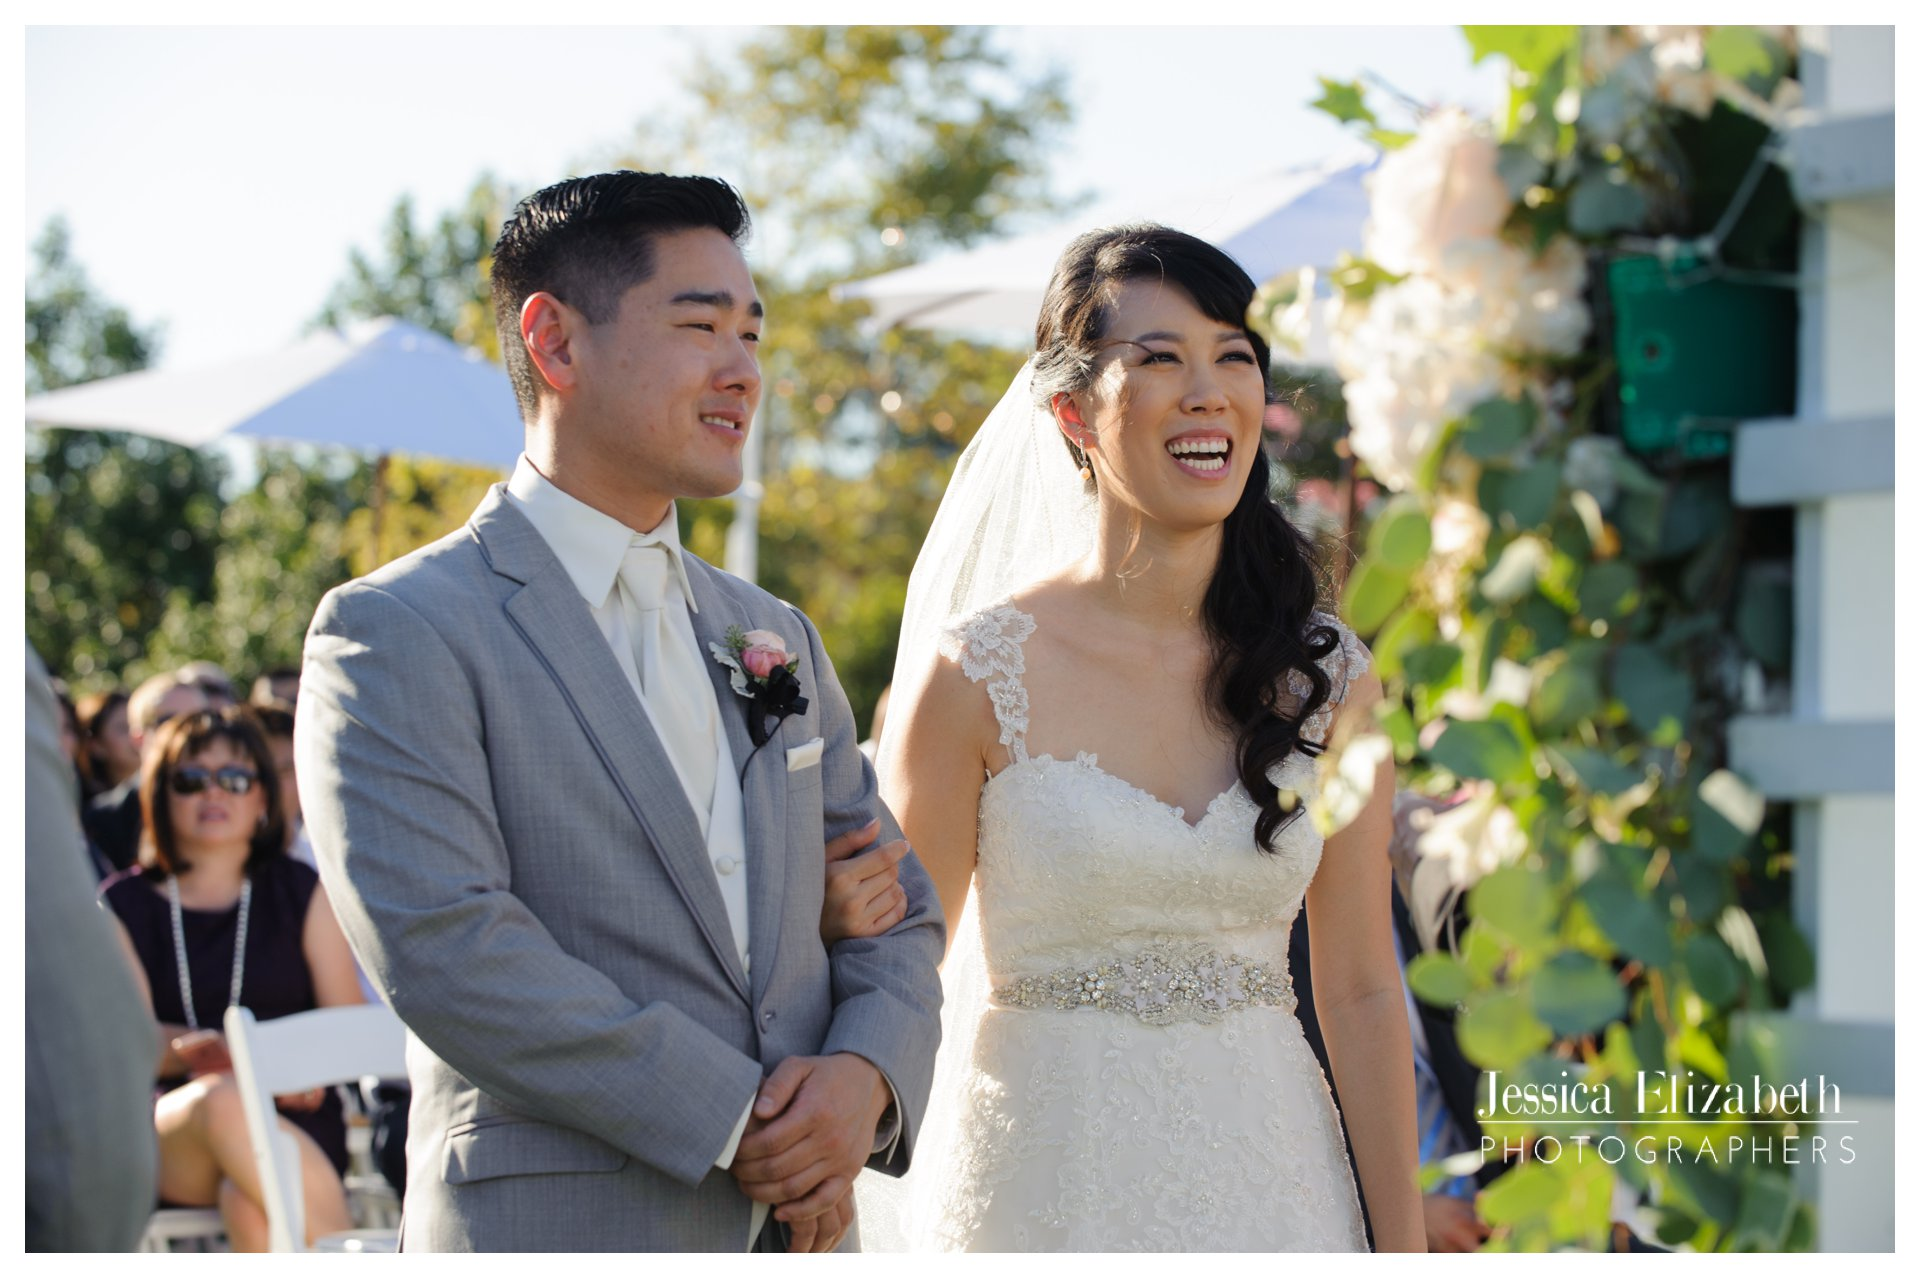 18-South-Coast-Botanic-Garden-Palos-Verdes-Wedding-Photography-by-Jessica-Elizabeth.jpg